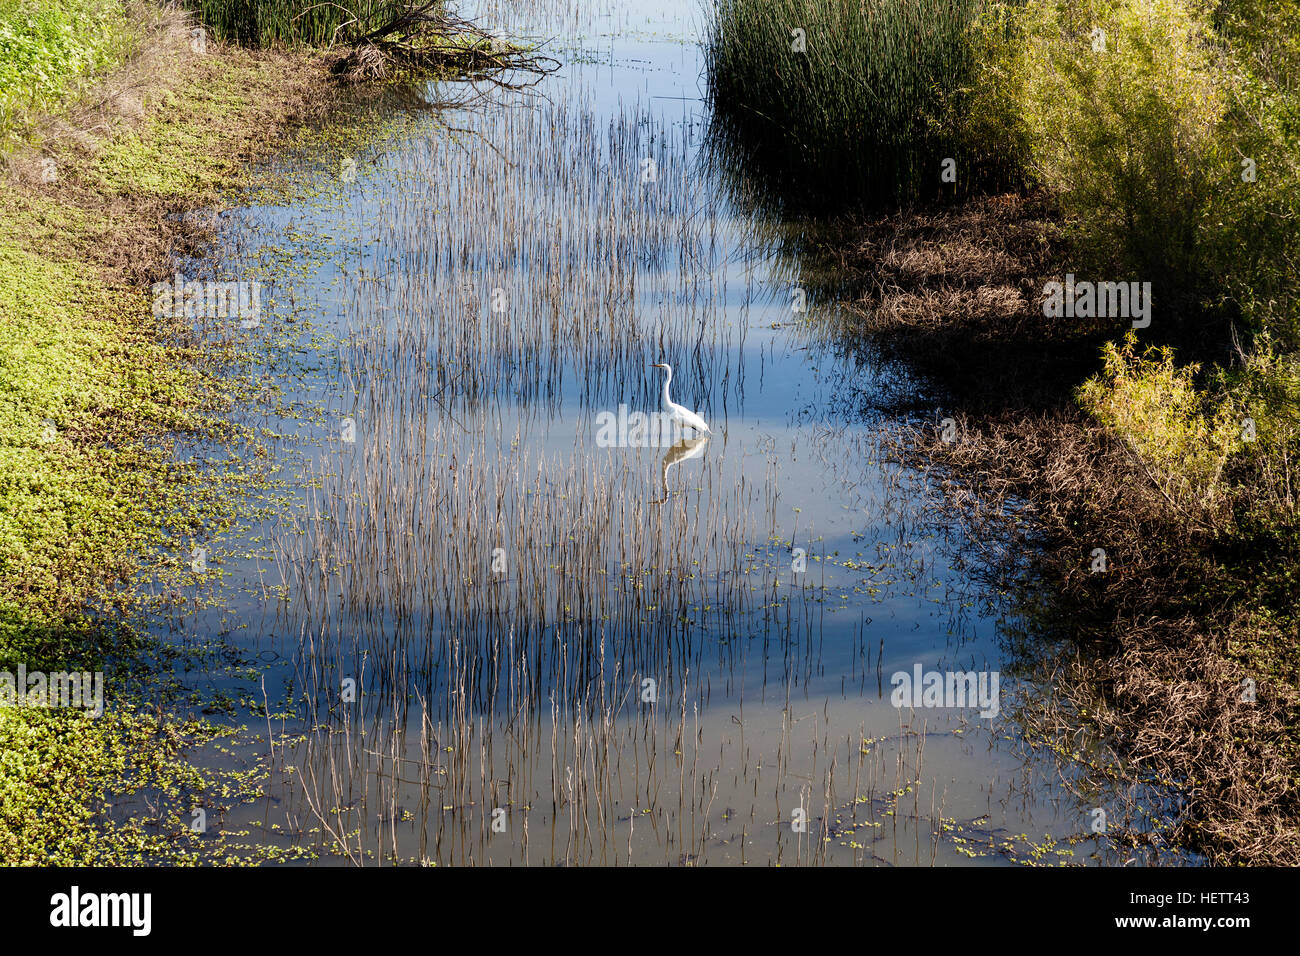 White Egret In Wetlands Standing In Water With Green Reeds Stock Photo